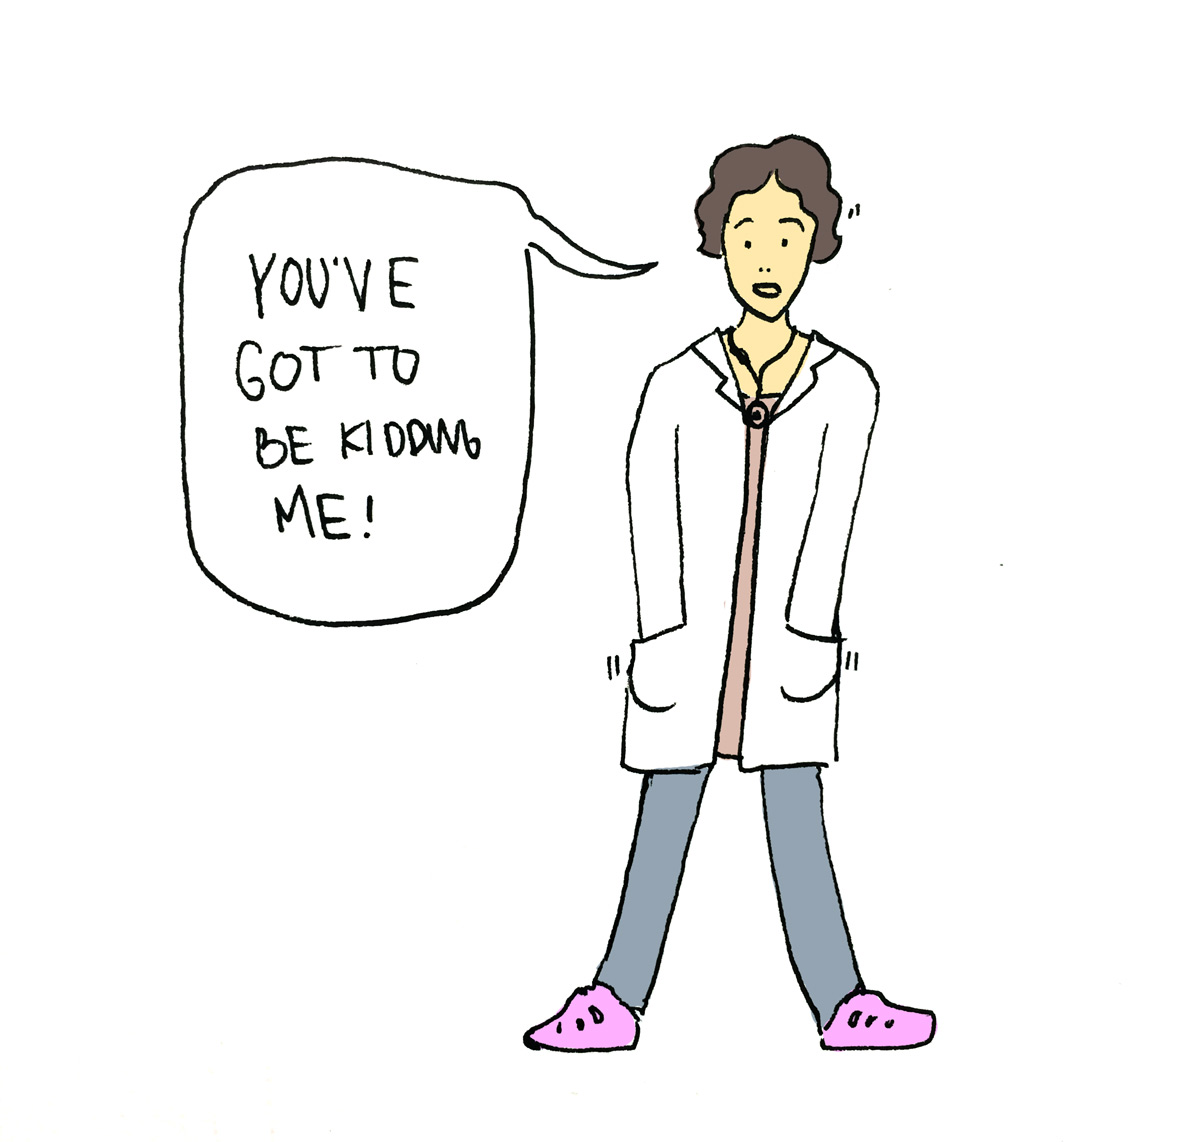 You've got to be kidding me - doctor comic